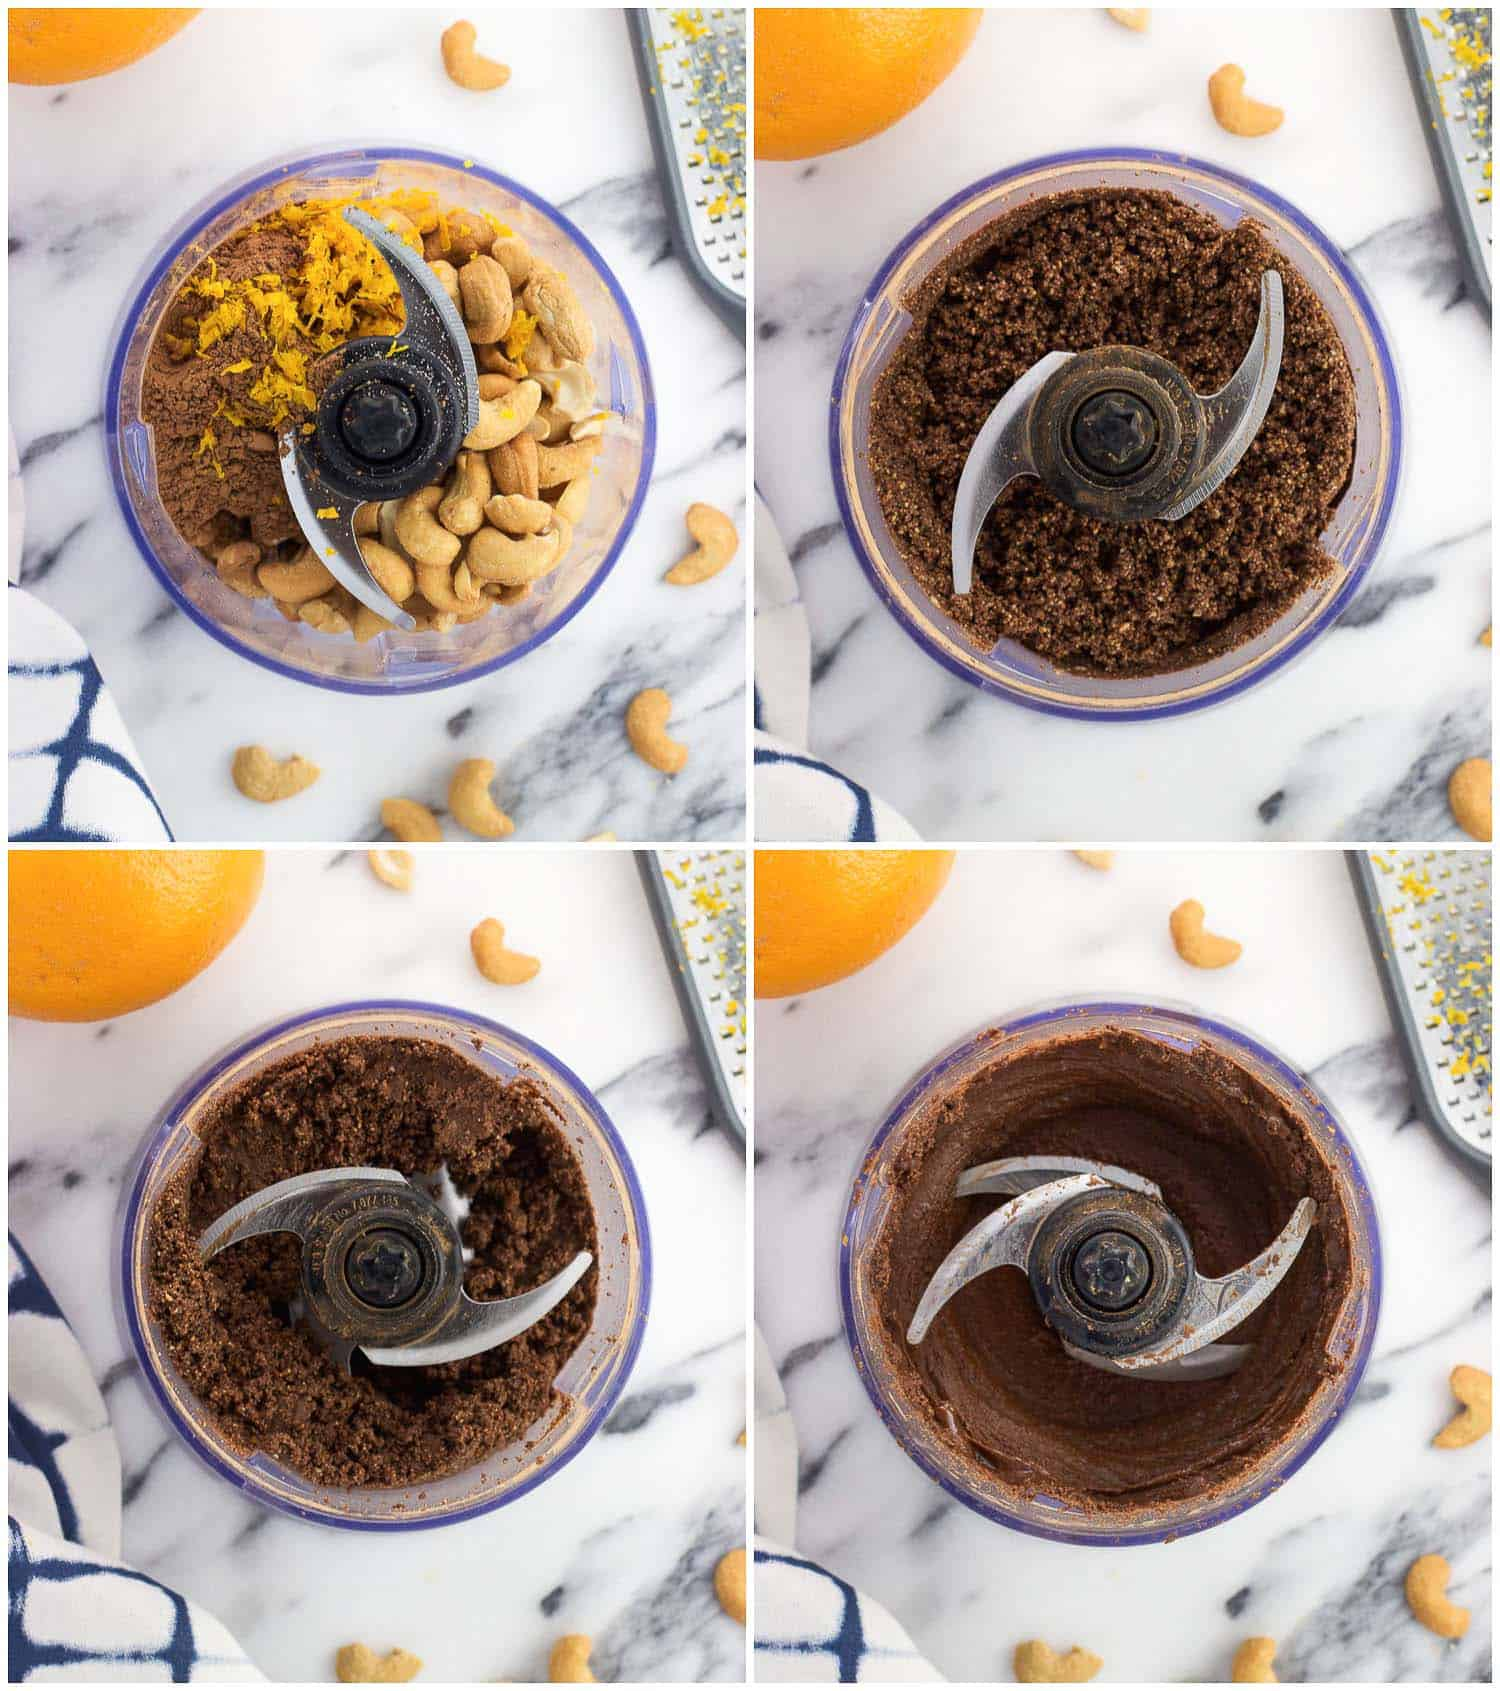 Orange Chocolate Cashew Butter is made in minutes in the food processor for a creamy and delicious spread with no sugar added. Sub it in for peanut or almond butter in sandwiches, or serve it as a perfect dip for fruit or pretzels!